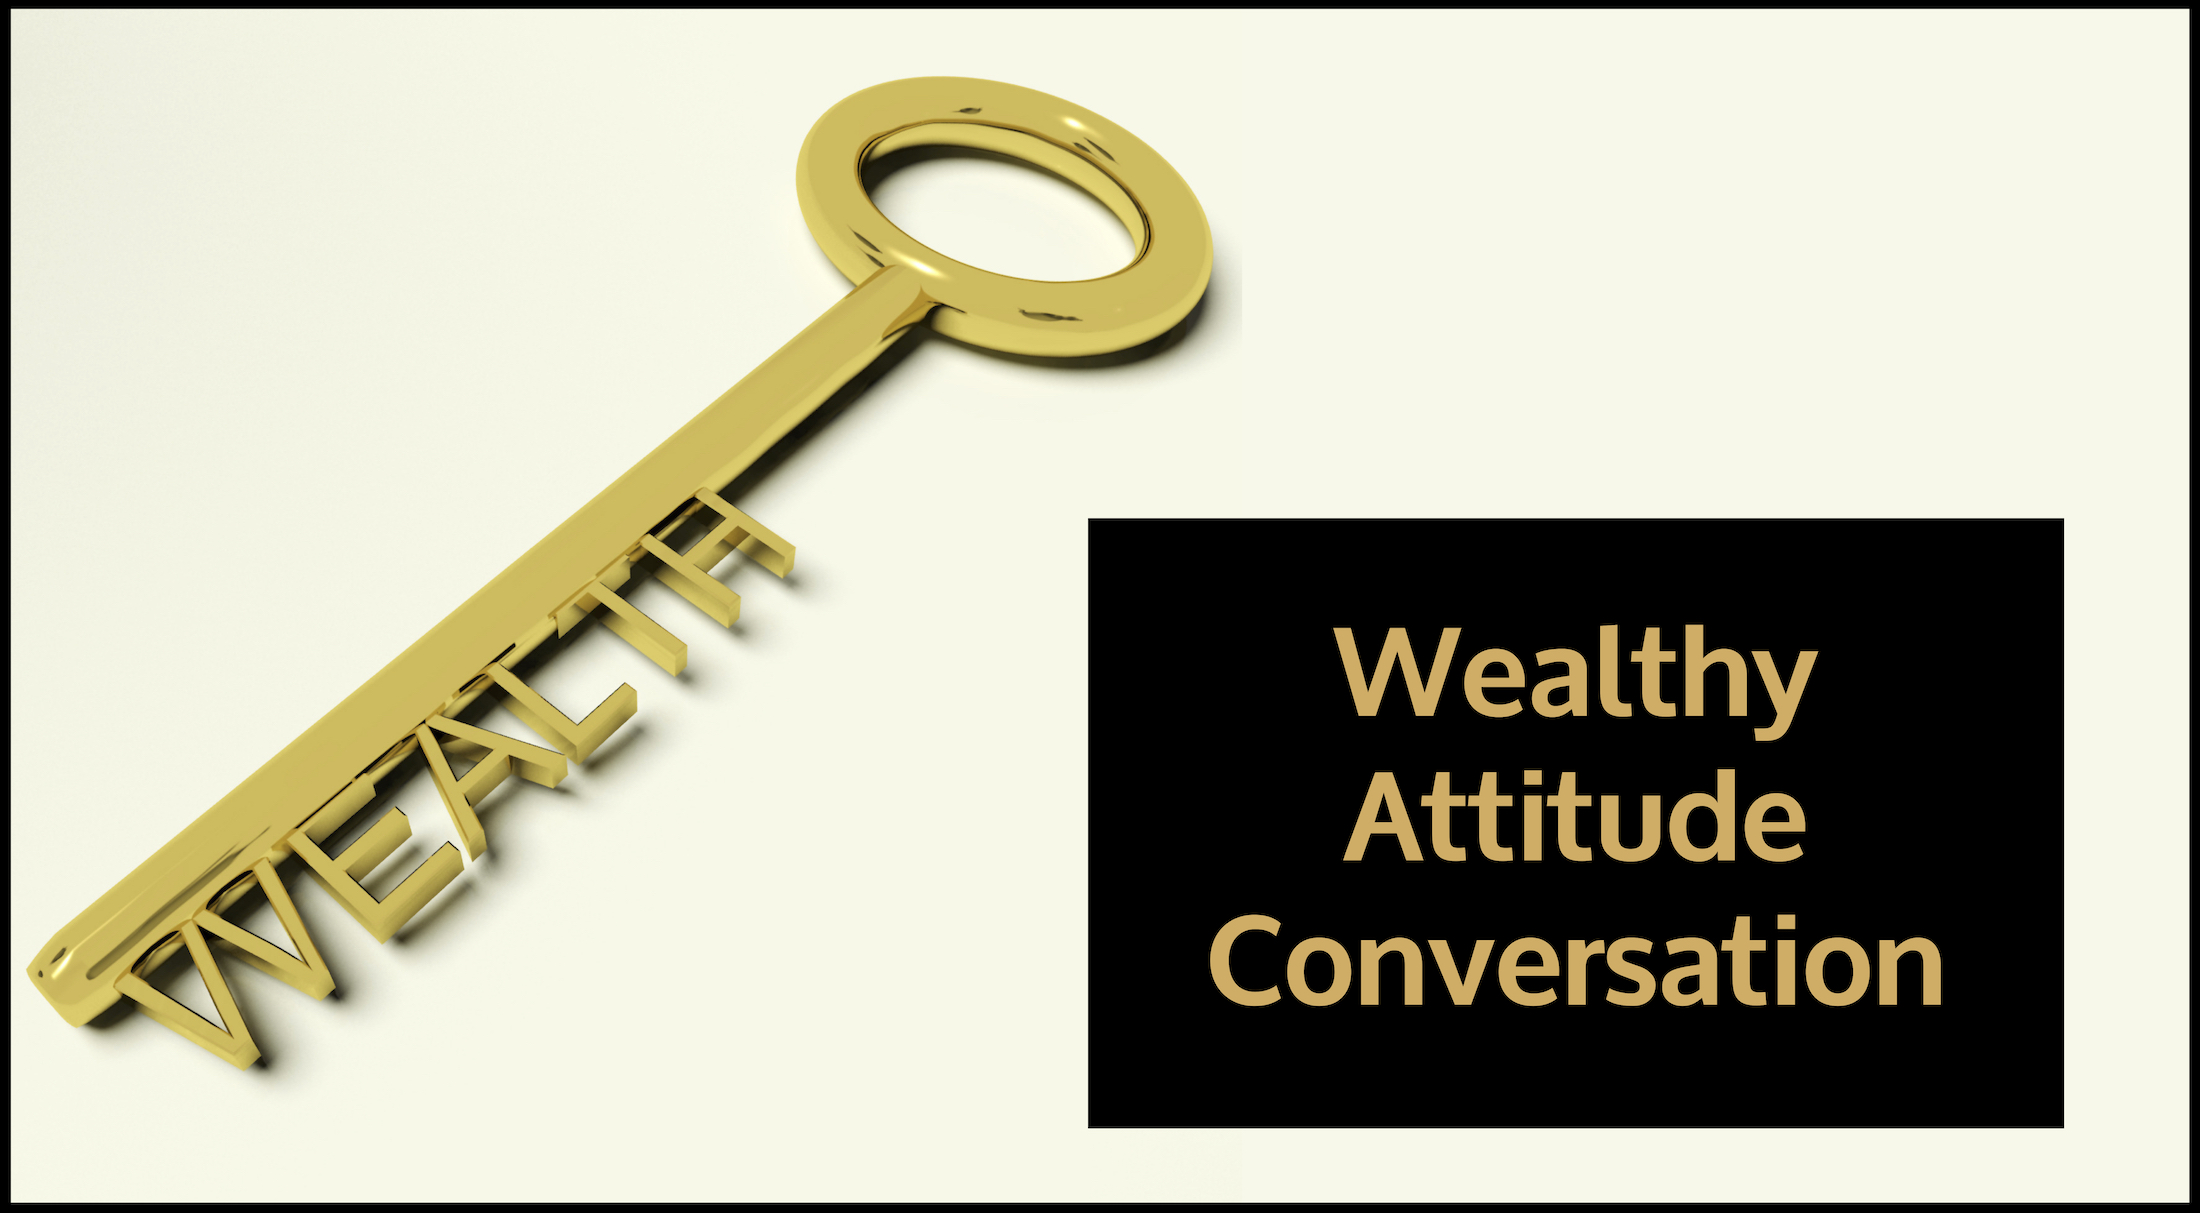 Wealthy Attitude Conversation